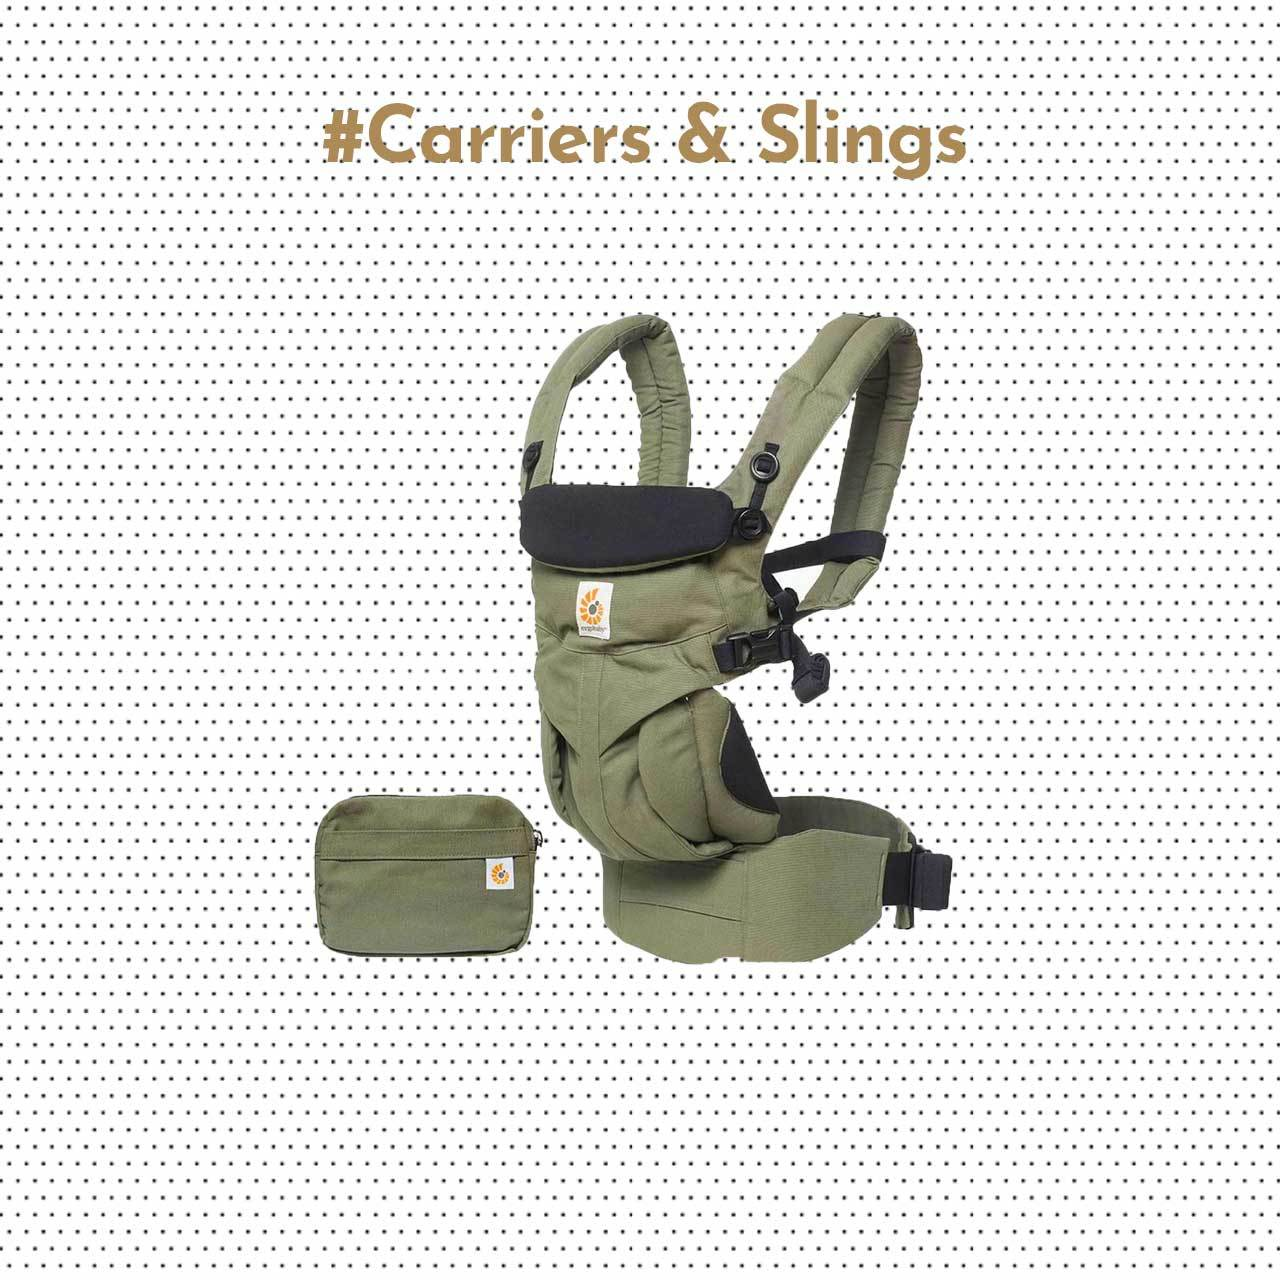 Carriers & Slings